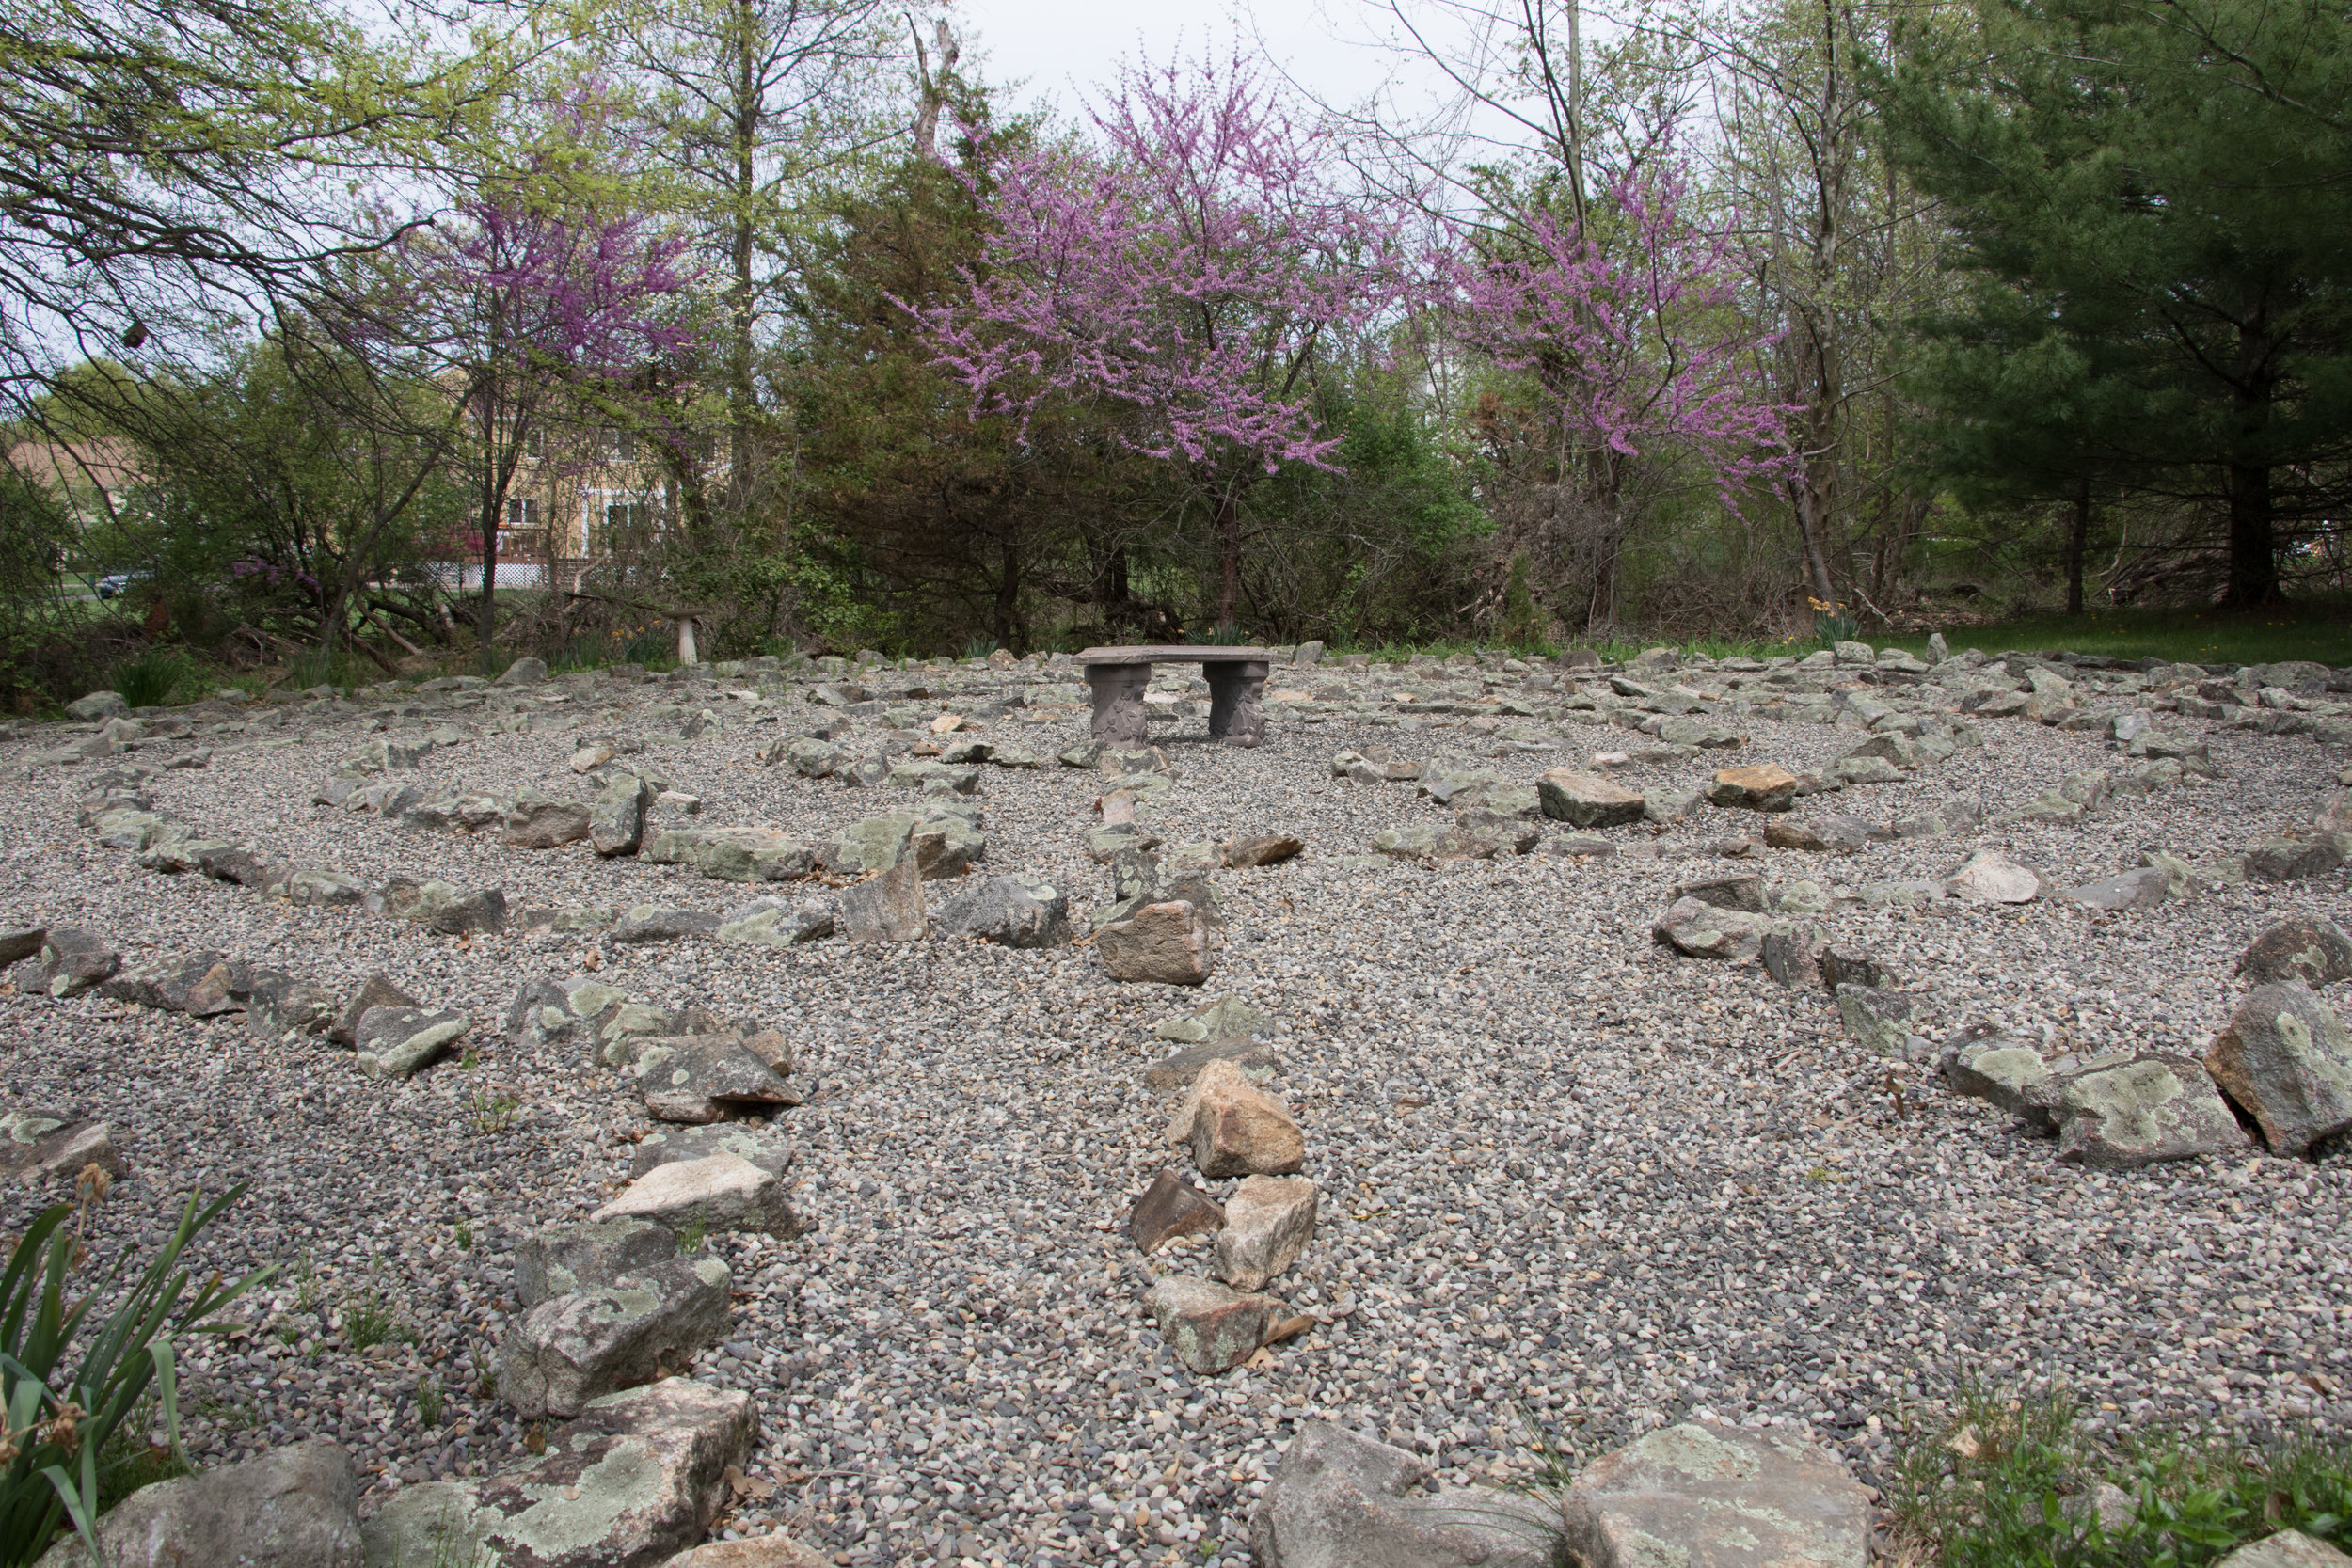 Labyrinth: Stone, Gravel, and Flowers